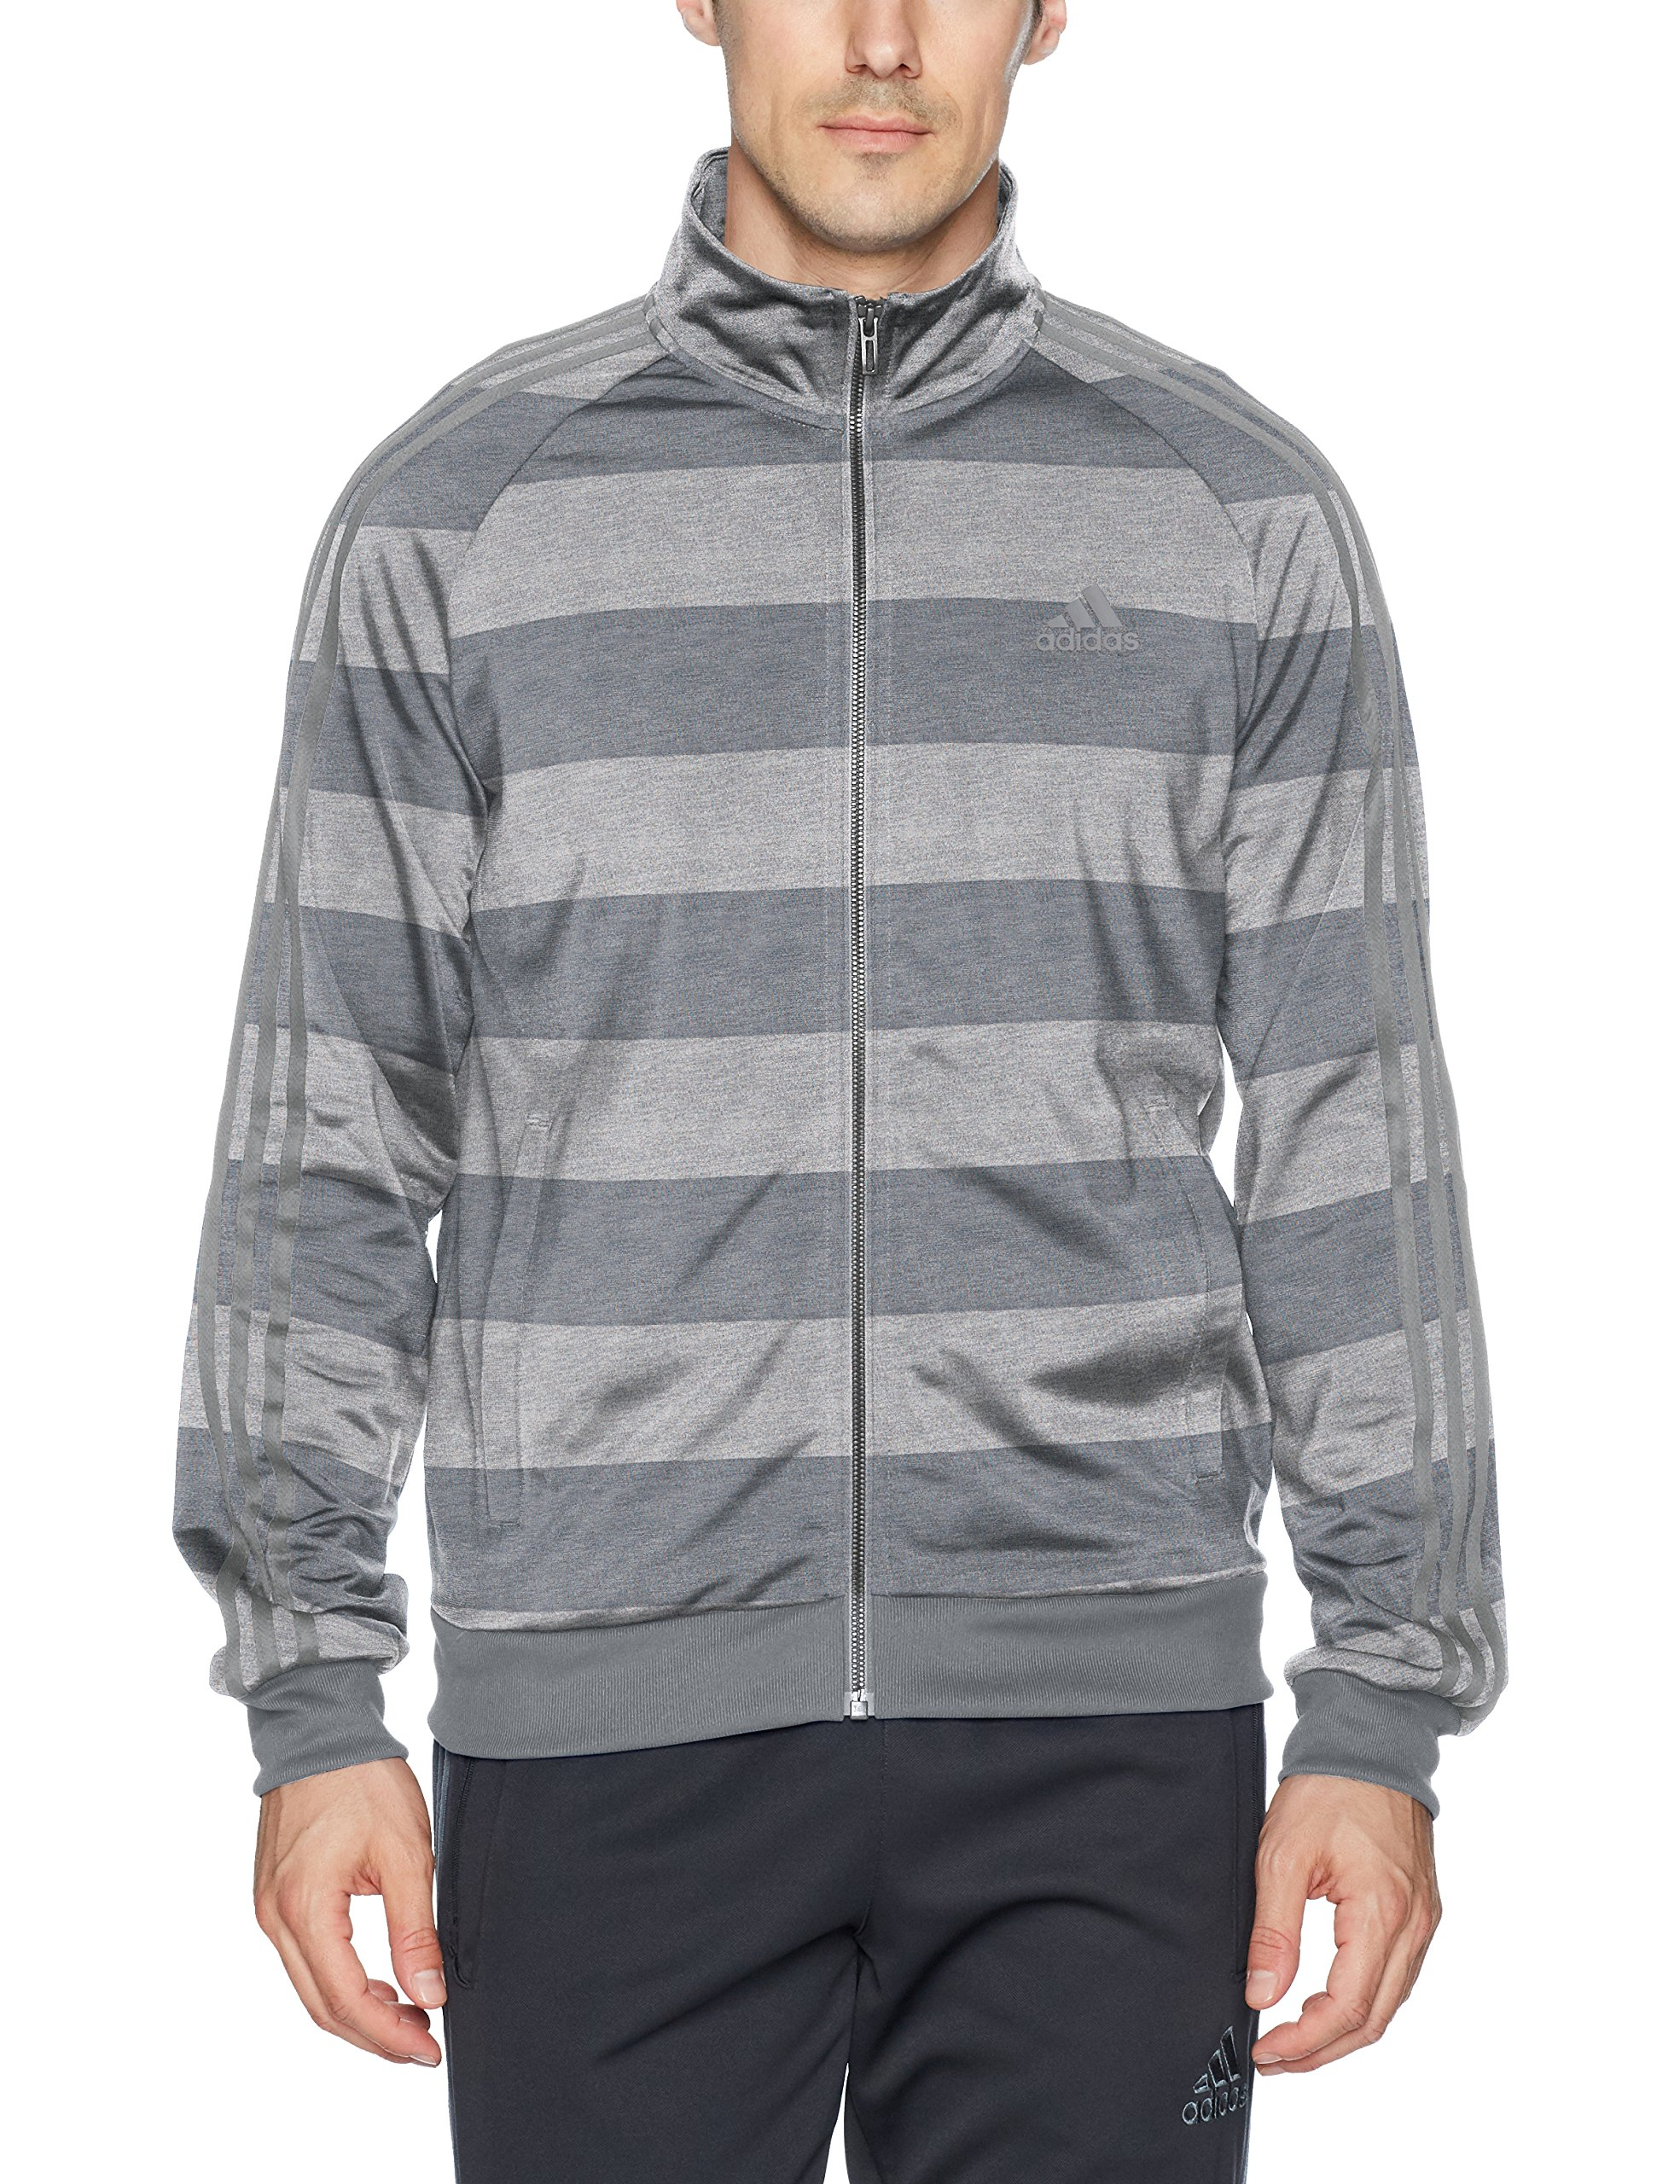 adidas Men's Essentials 3-Stripe Tricot Track Jacket, Medium Grey Heather/Print, Small by adidas (Image #1)